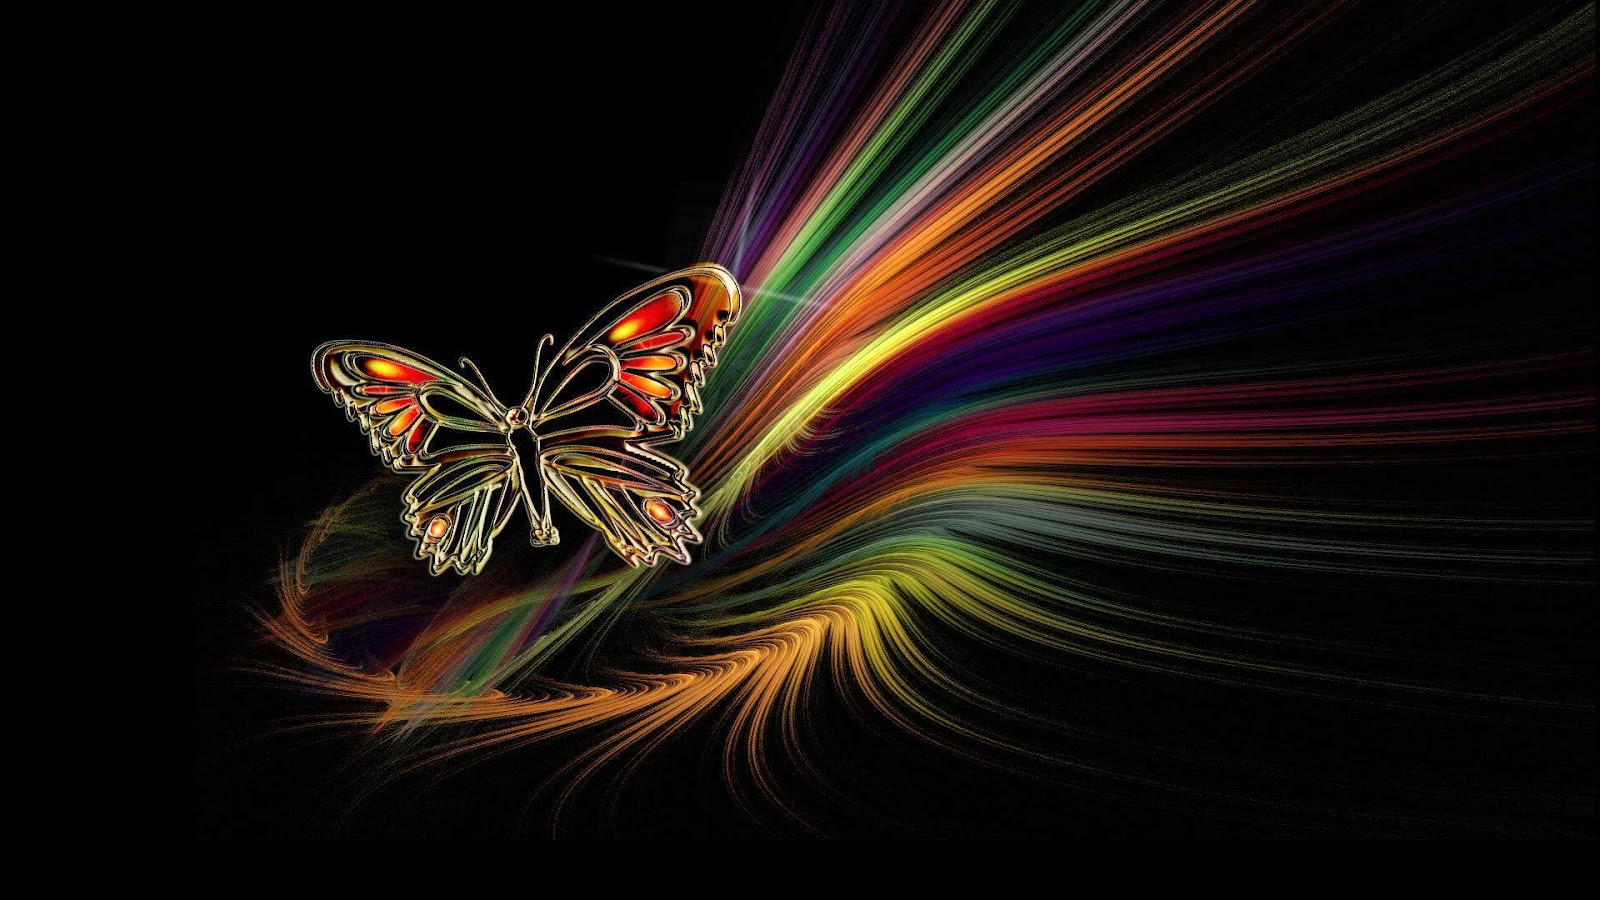 Cute Birds Wallpapers For Mobile Phones Colorful Butterfly Hd Wallpapers Real Amp Artistic